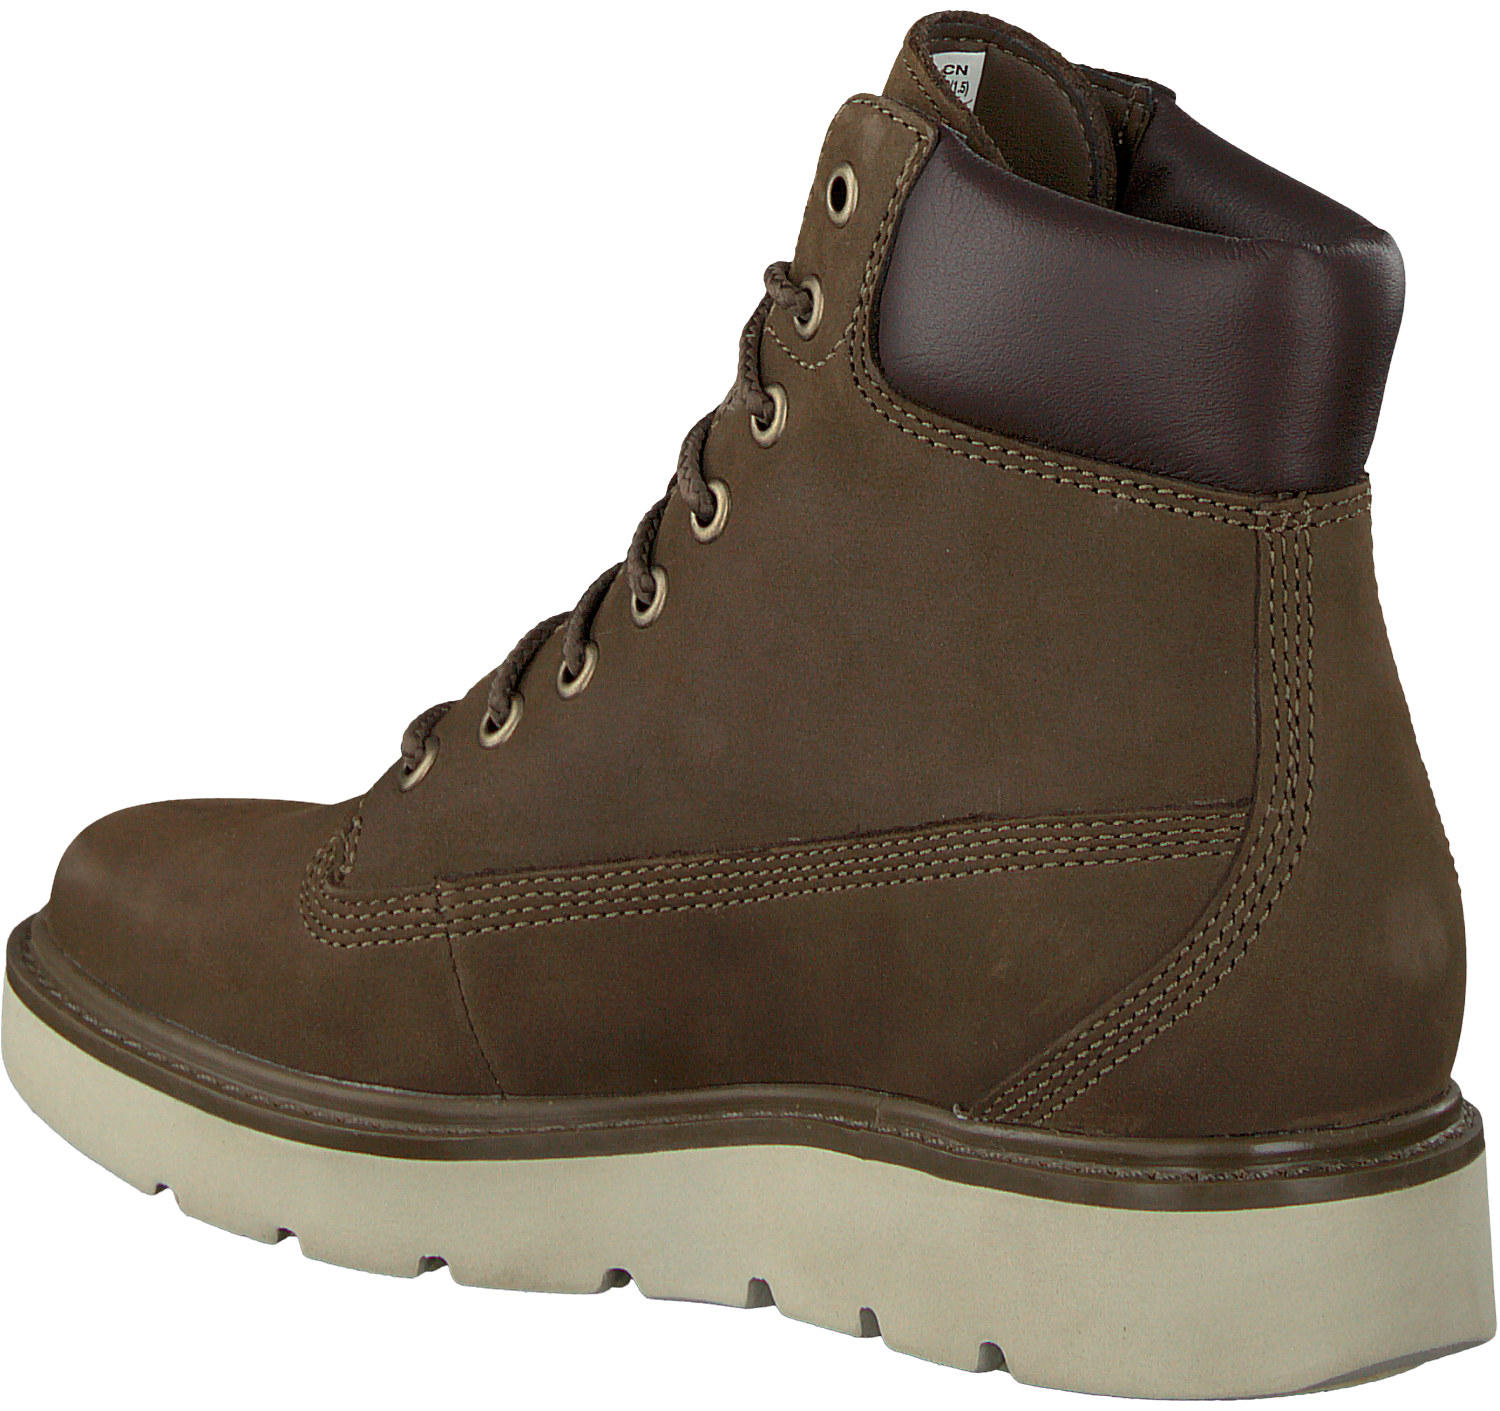 Groene TIMBERLAND Veterboots KENNISTON 6IN LACE UP Omoda.nl